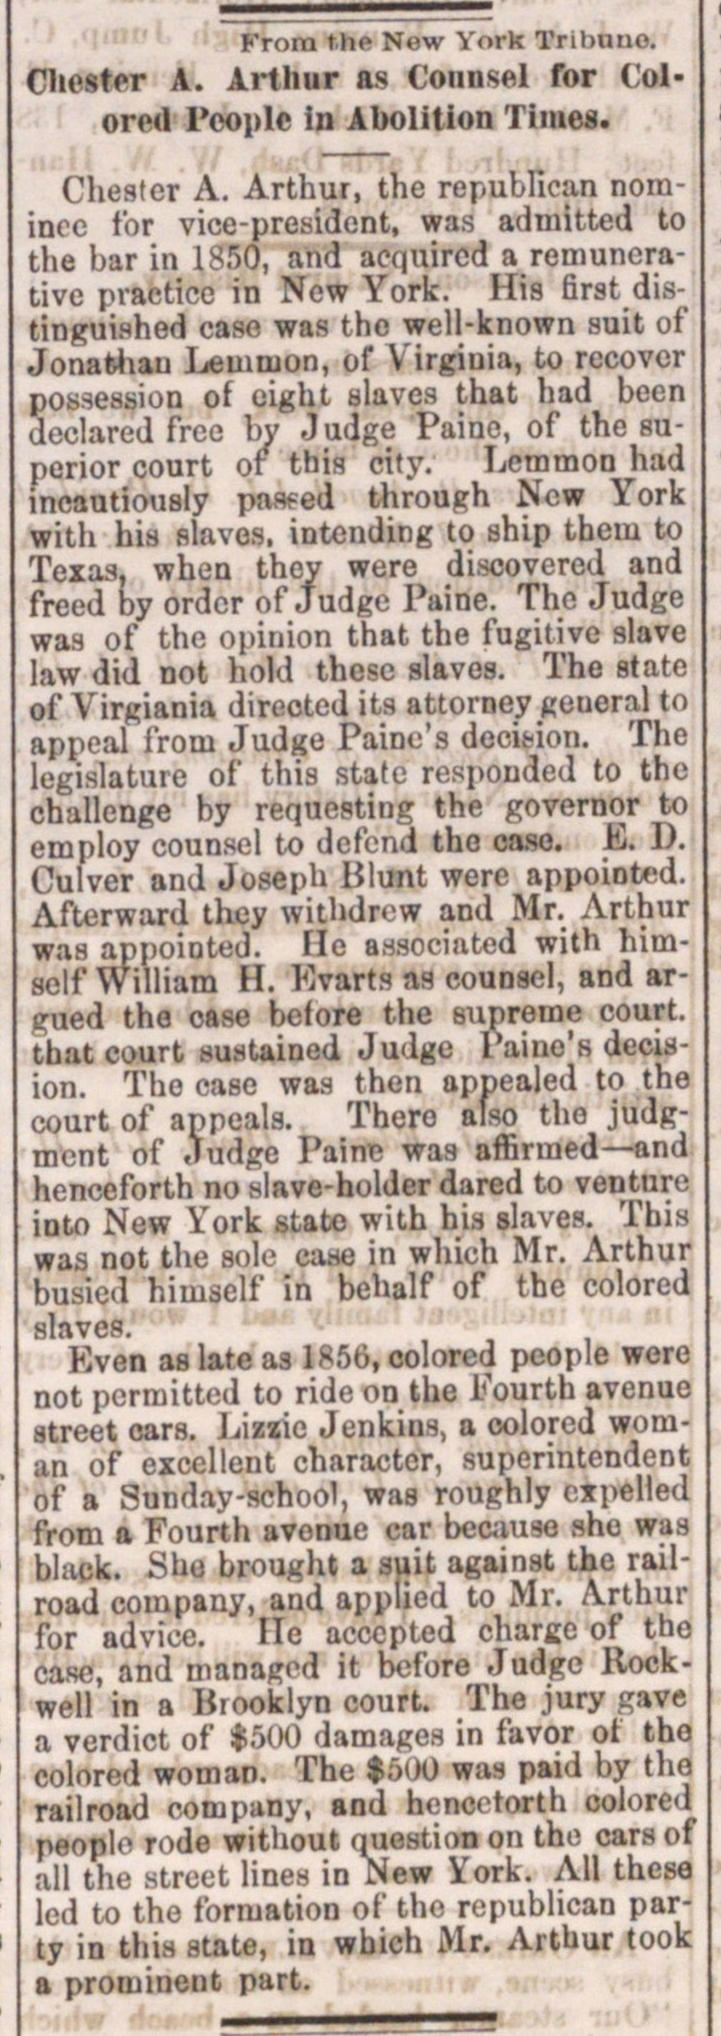 Chester A. Arthur As Counsel For Colored People In Abolition Times image